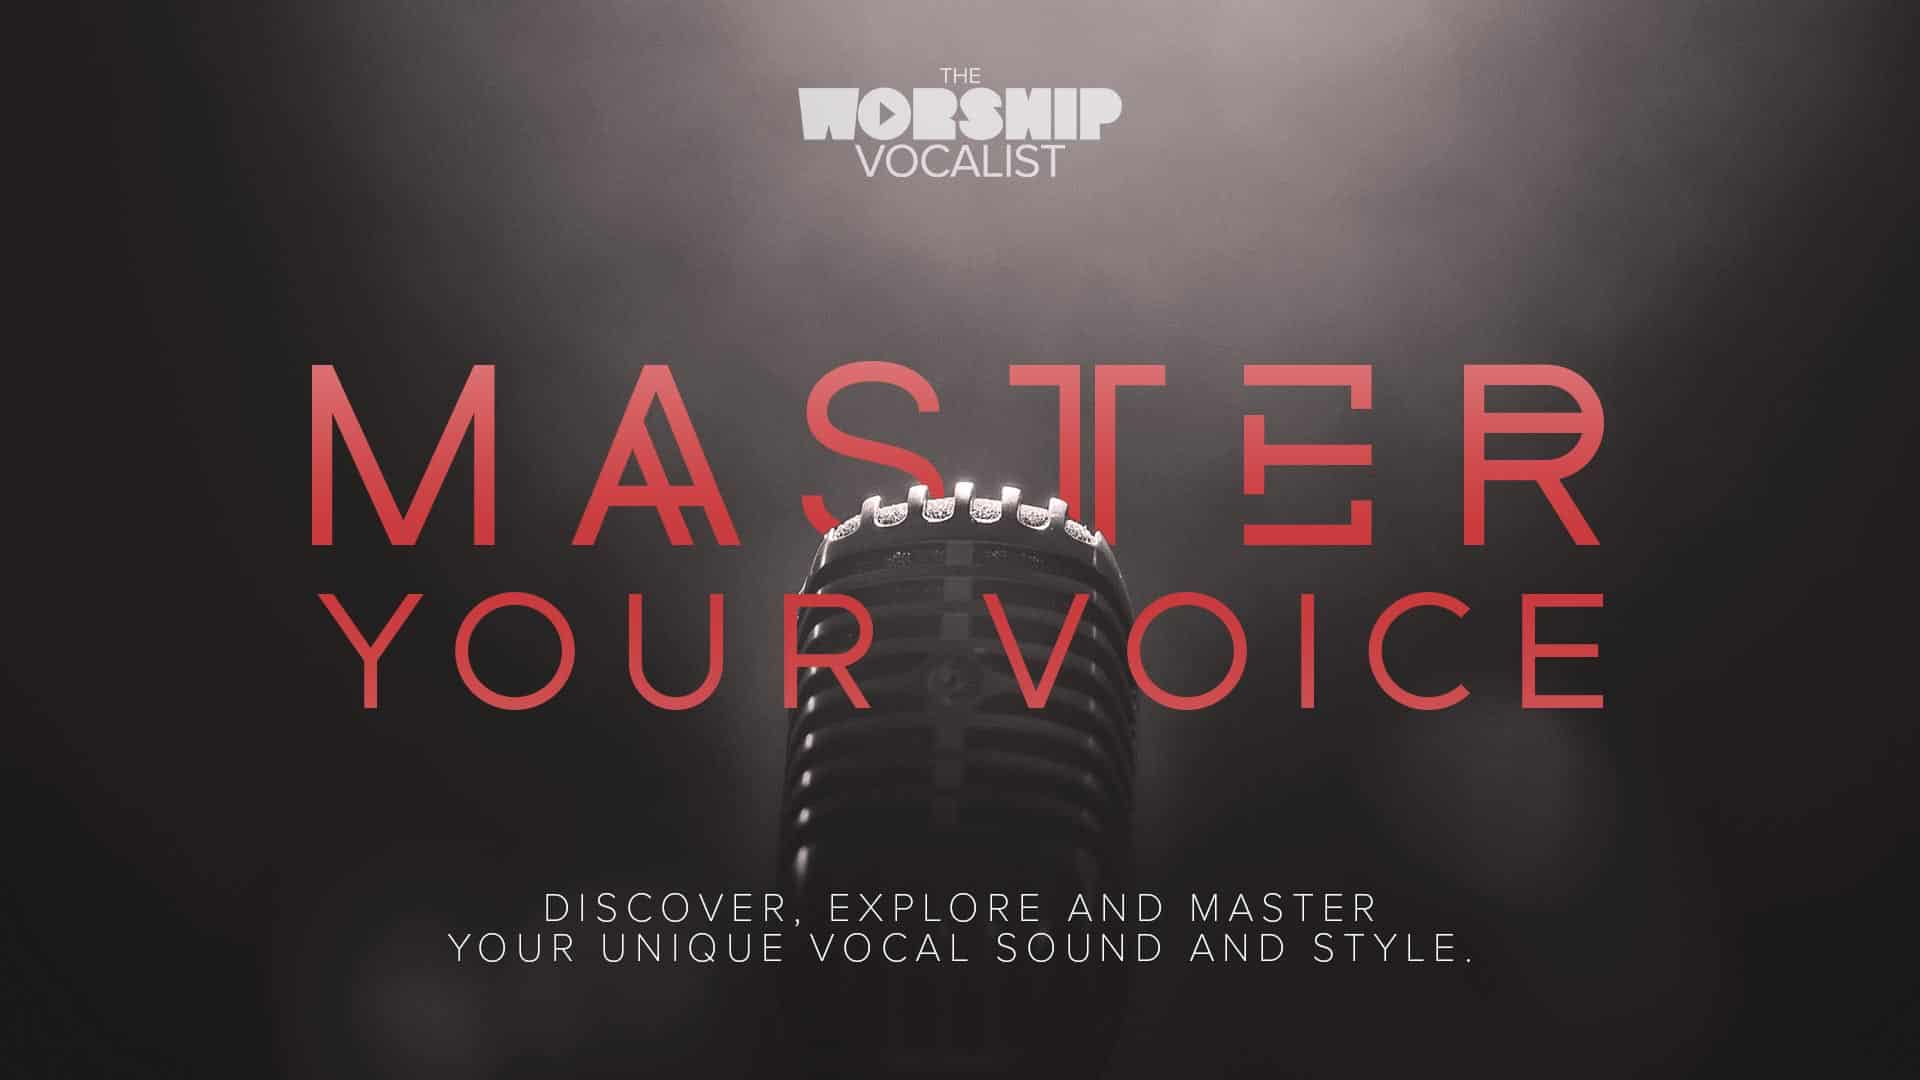 advanced singing training for worship singers for unique style